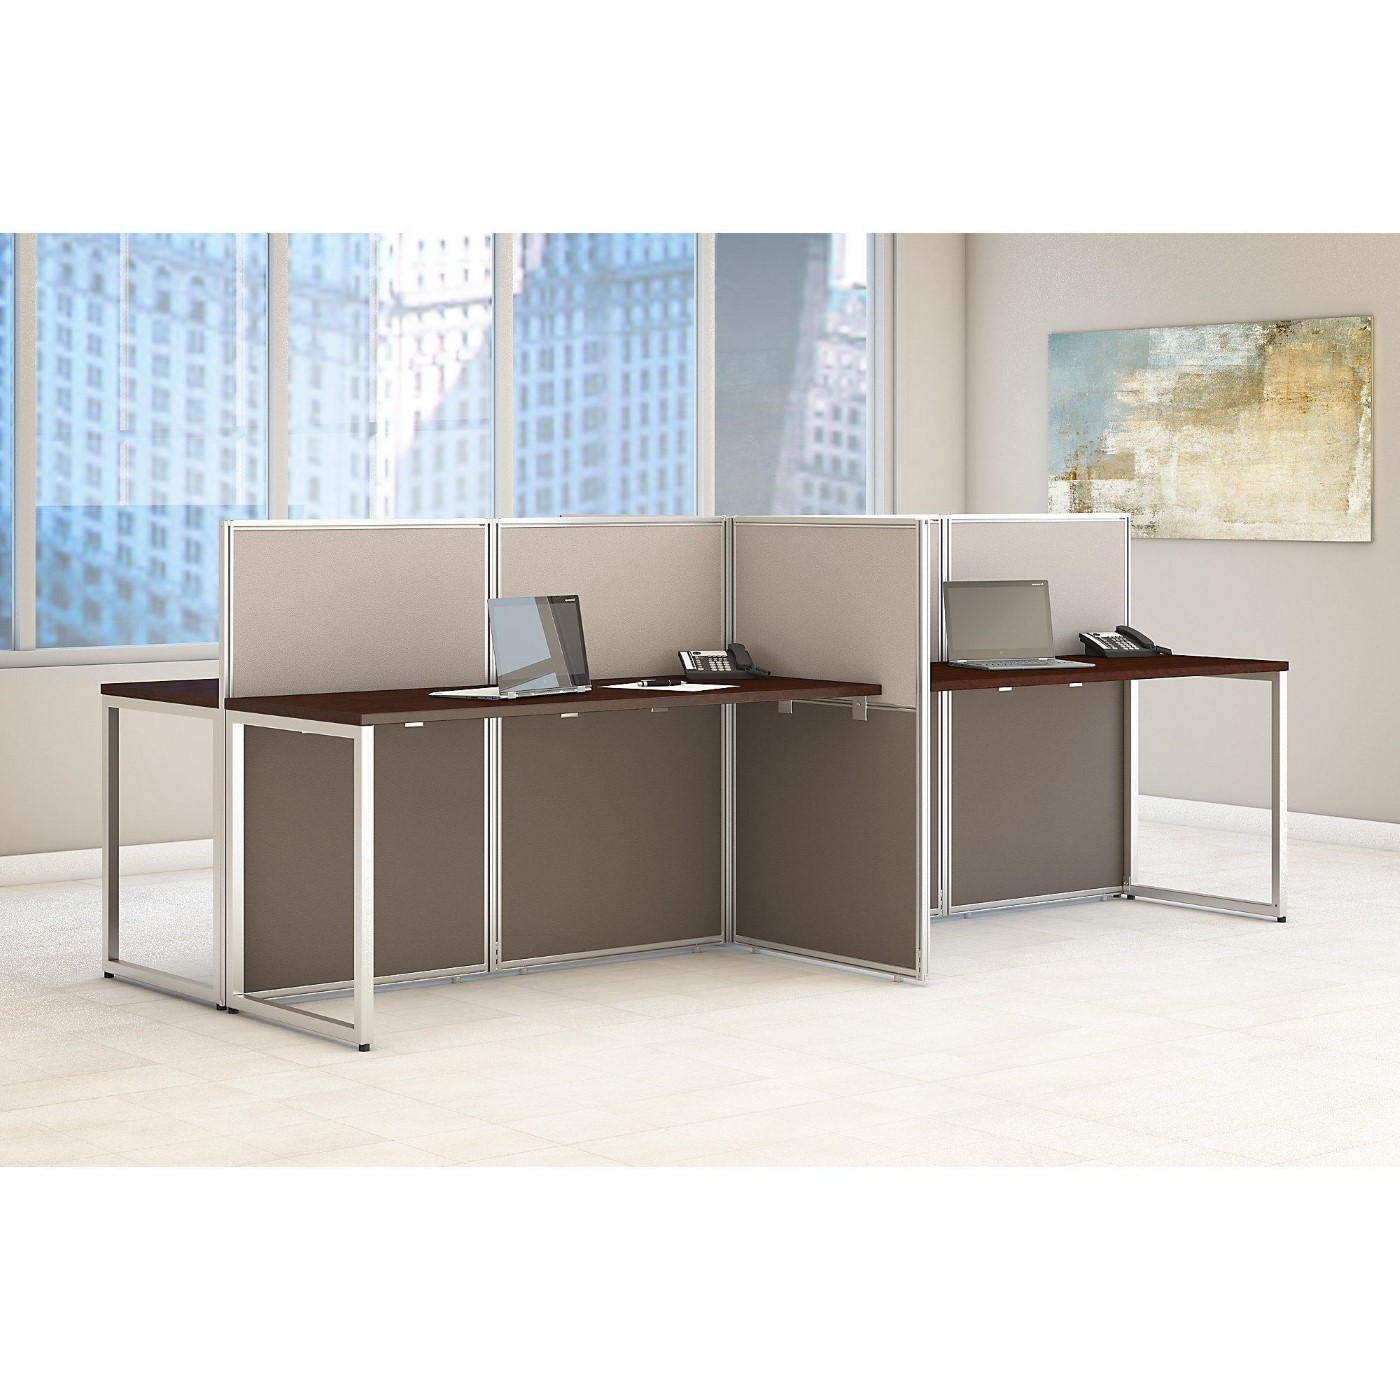 Office Table For 4 Person: Bush Business Furniture Easy Office 60W 4 Person Straight